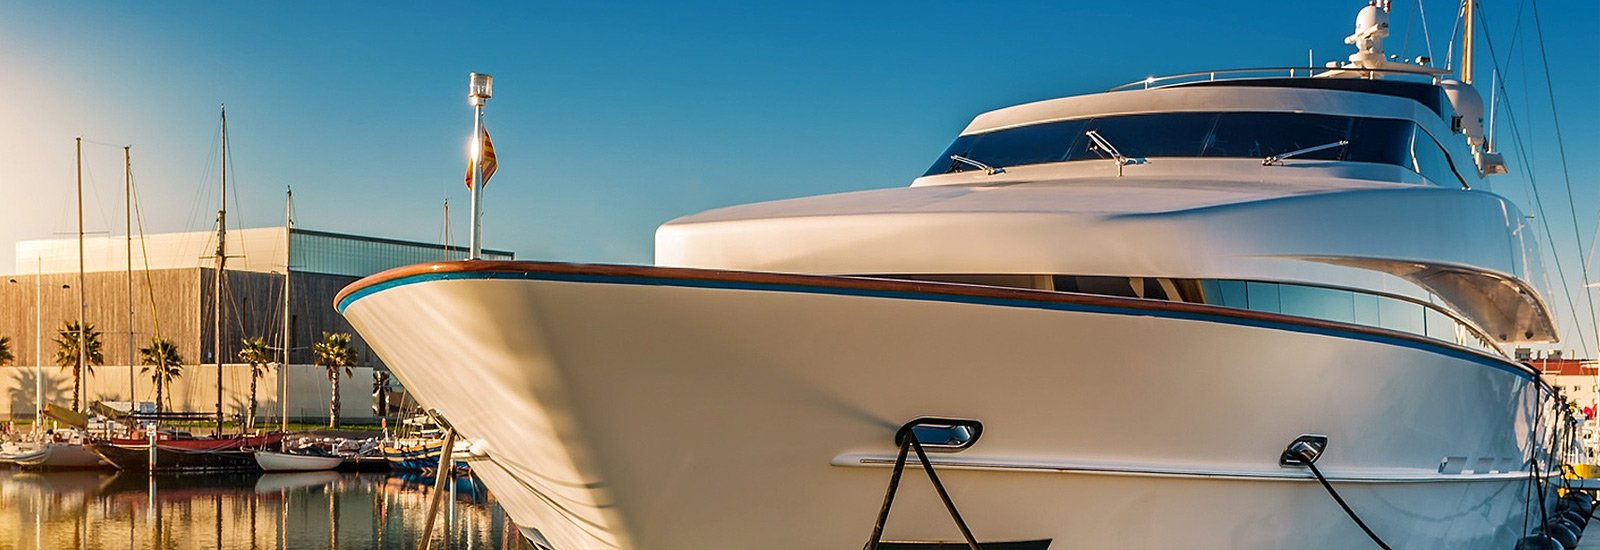 JMA Yachting Port-Fréjus Vente Location Neuf Occasion Places de port